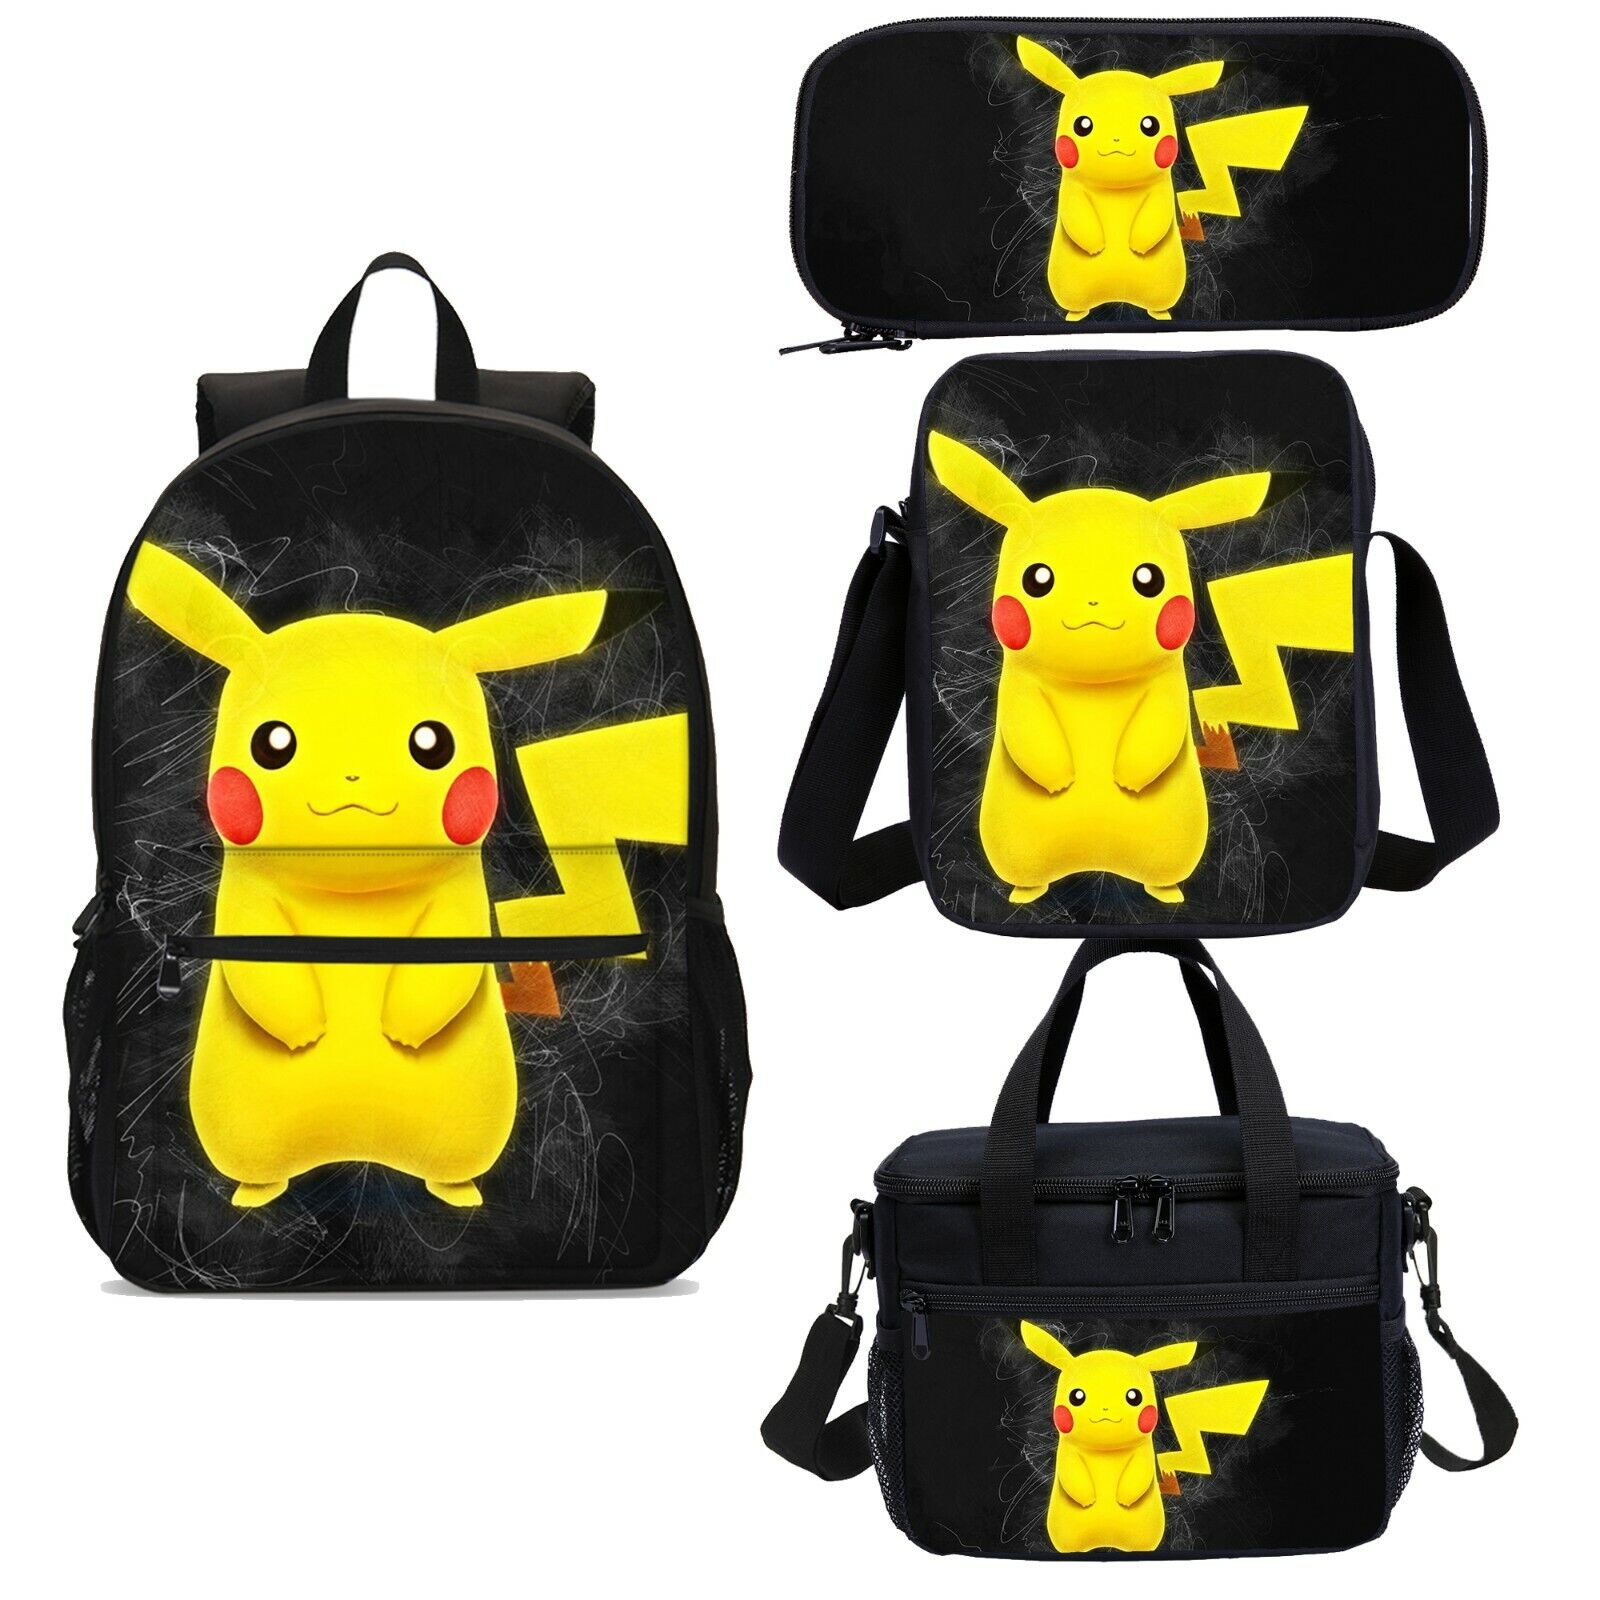 Pokemon Pikachu Kids Backpack Insulated Lunch Bag Cross-body Pen Bag Wholesale